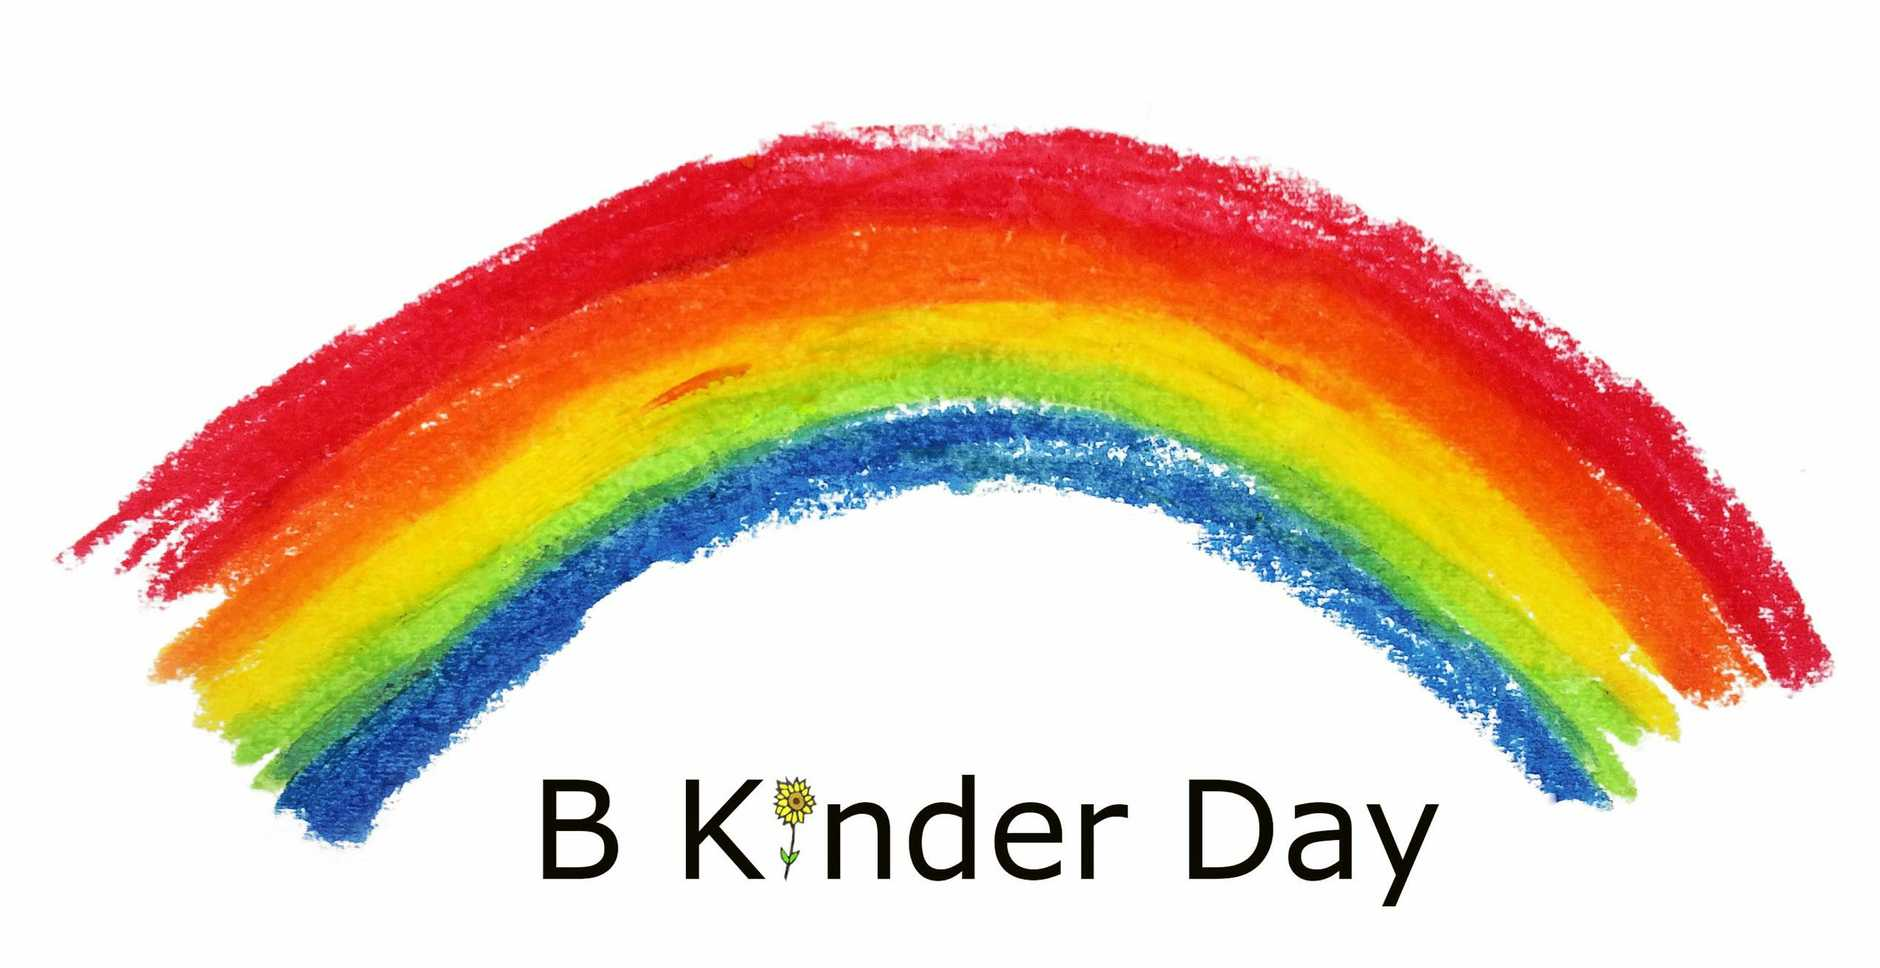 The final logo for Be Kinder Day.